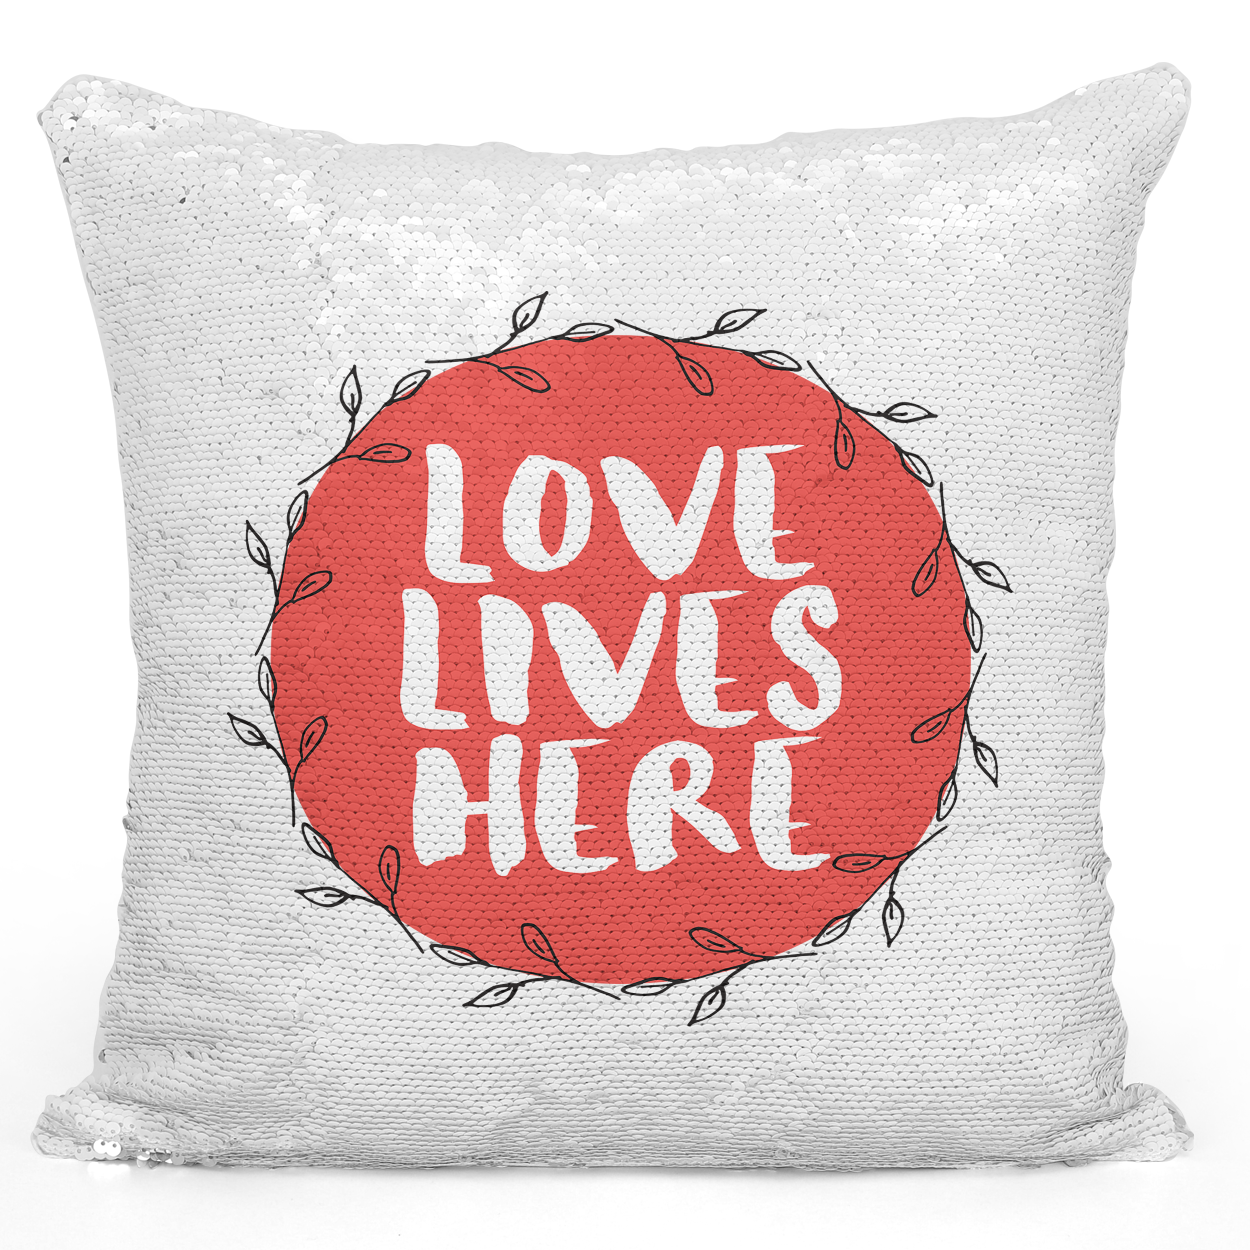 16x16 inch Sequin Throw Pillow Magic Flip Pillow Love Lives Here Couples Pillow Wreath Loud Universe